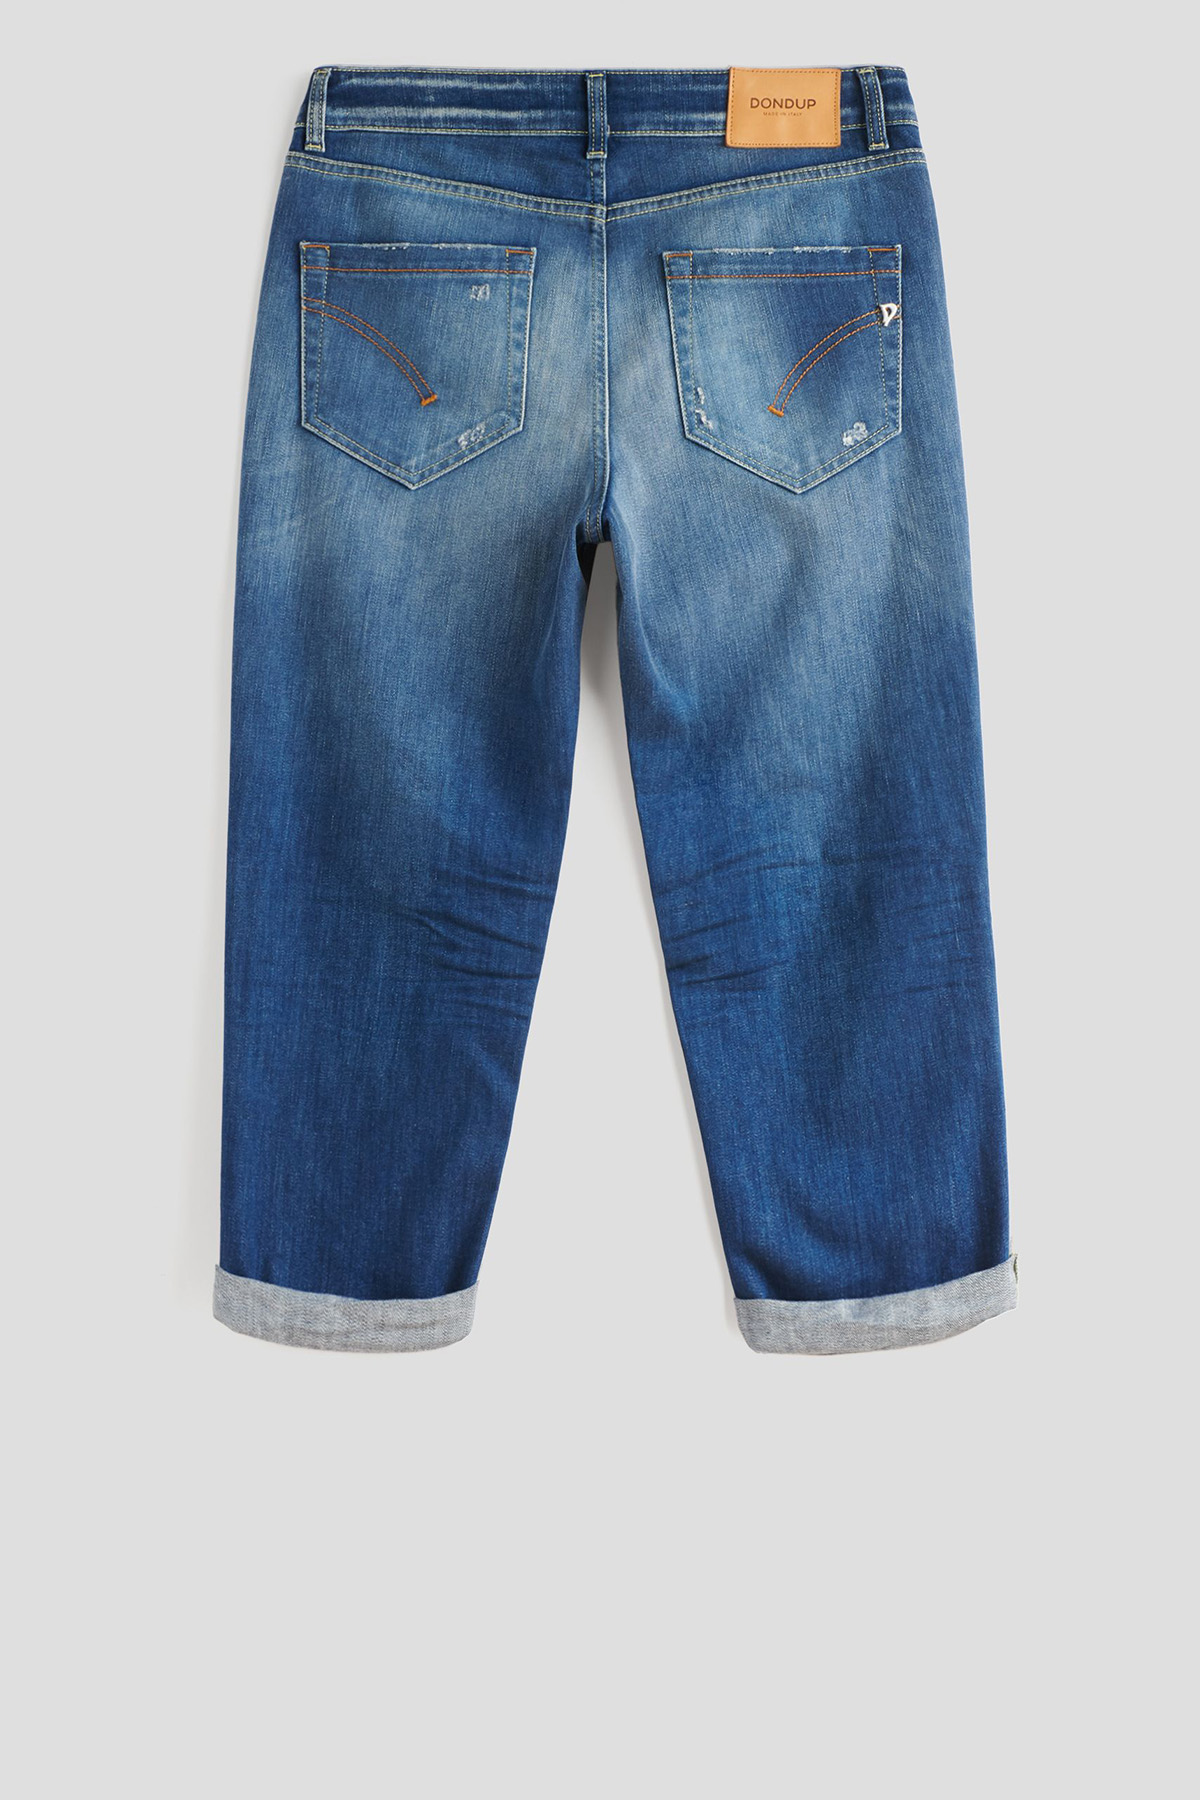 jeans Loose koons gioiello DONDUP | 24 | DP268BDS0107DBQ8